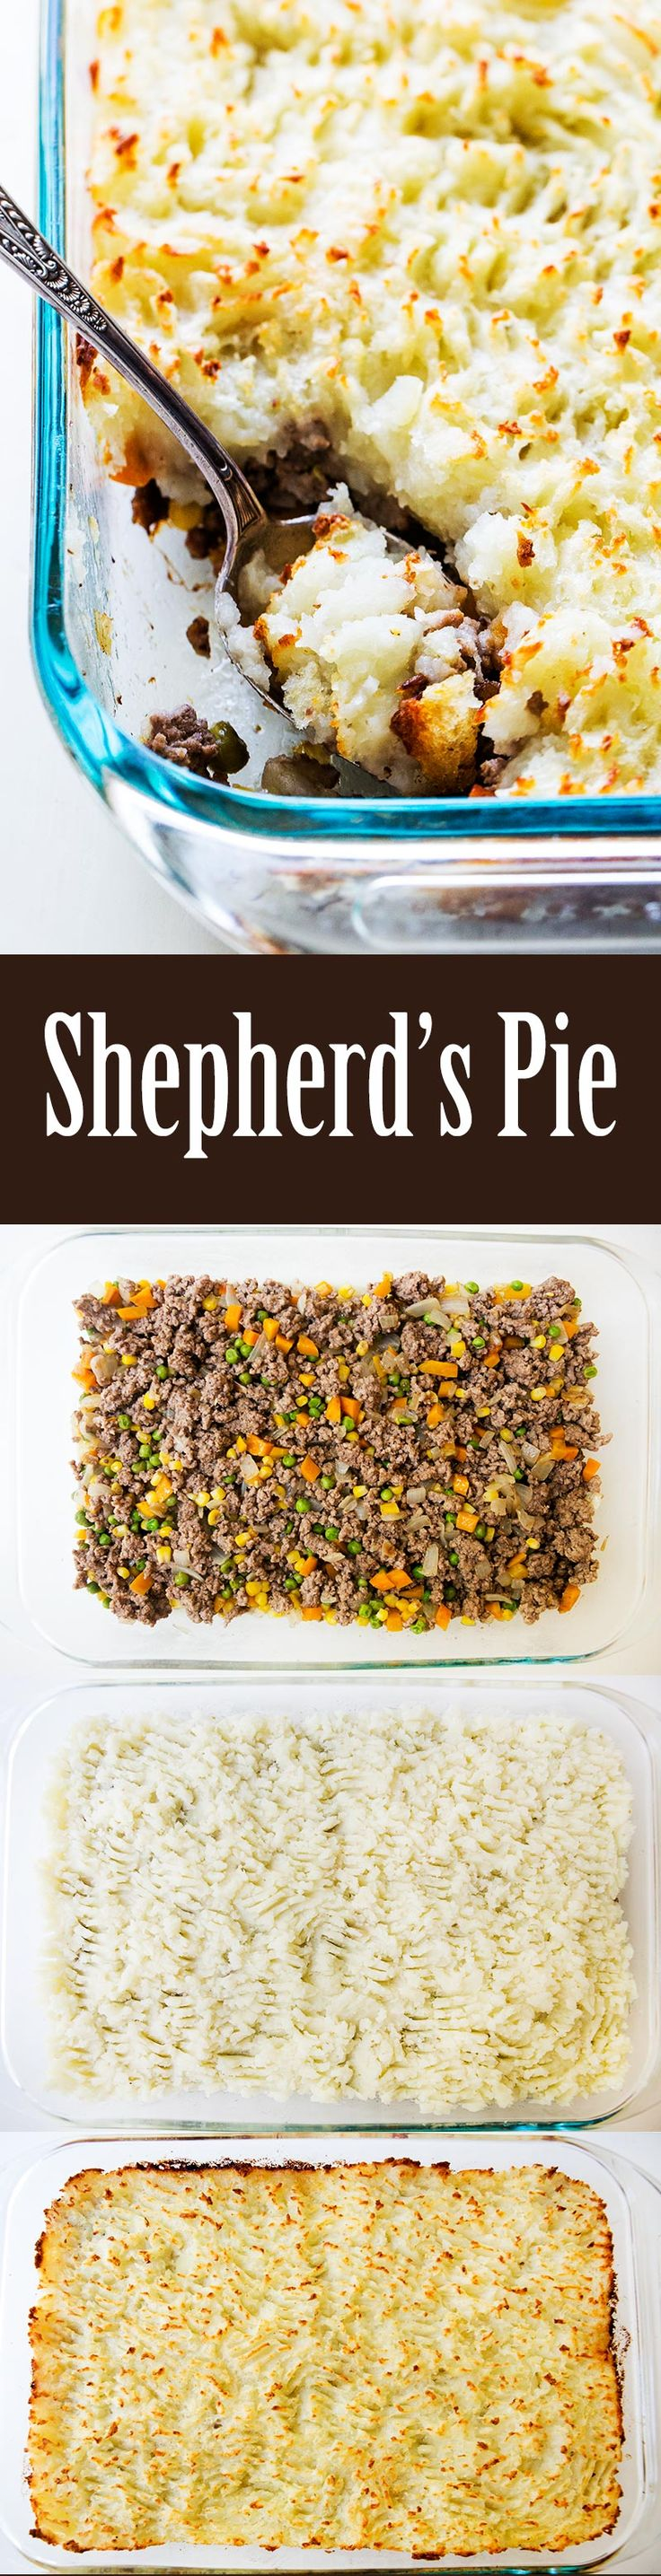 American favorite shepherd's pie recipe! Casserole with ground beef, vegetables such as carrots, corn, and peas, topped with mashed potatoes. On SimplyRecipes.com